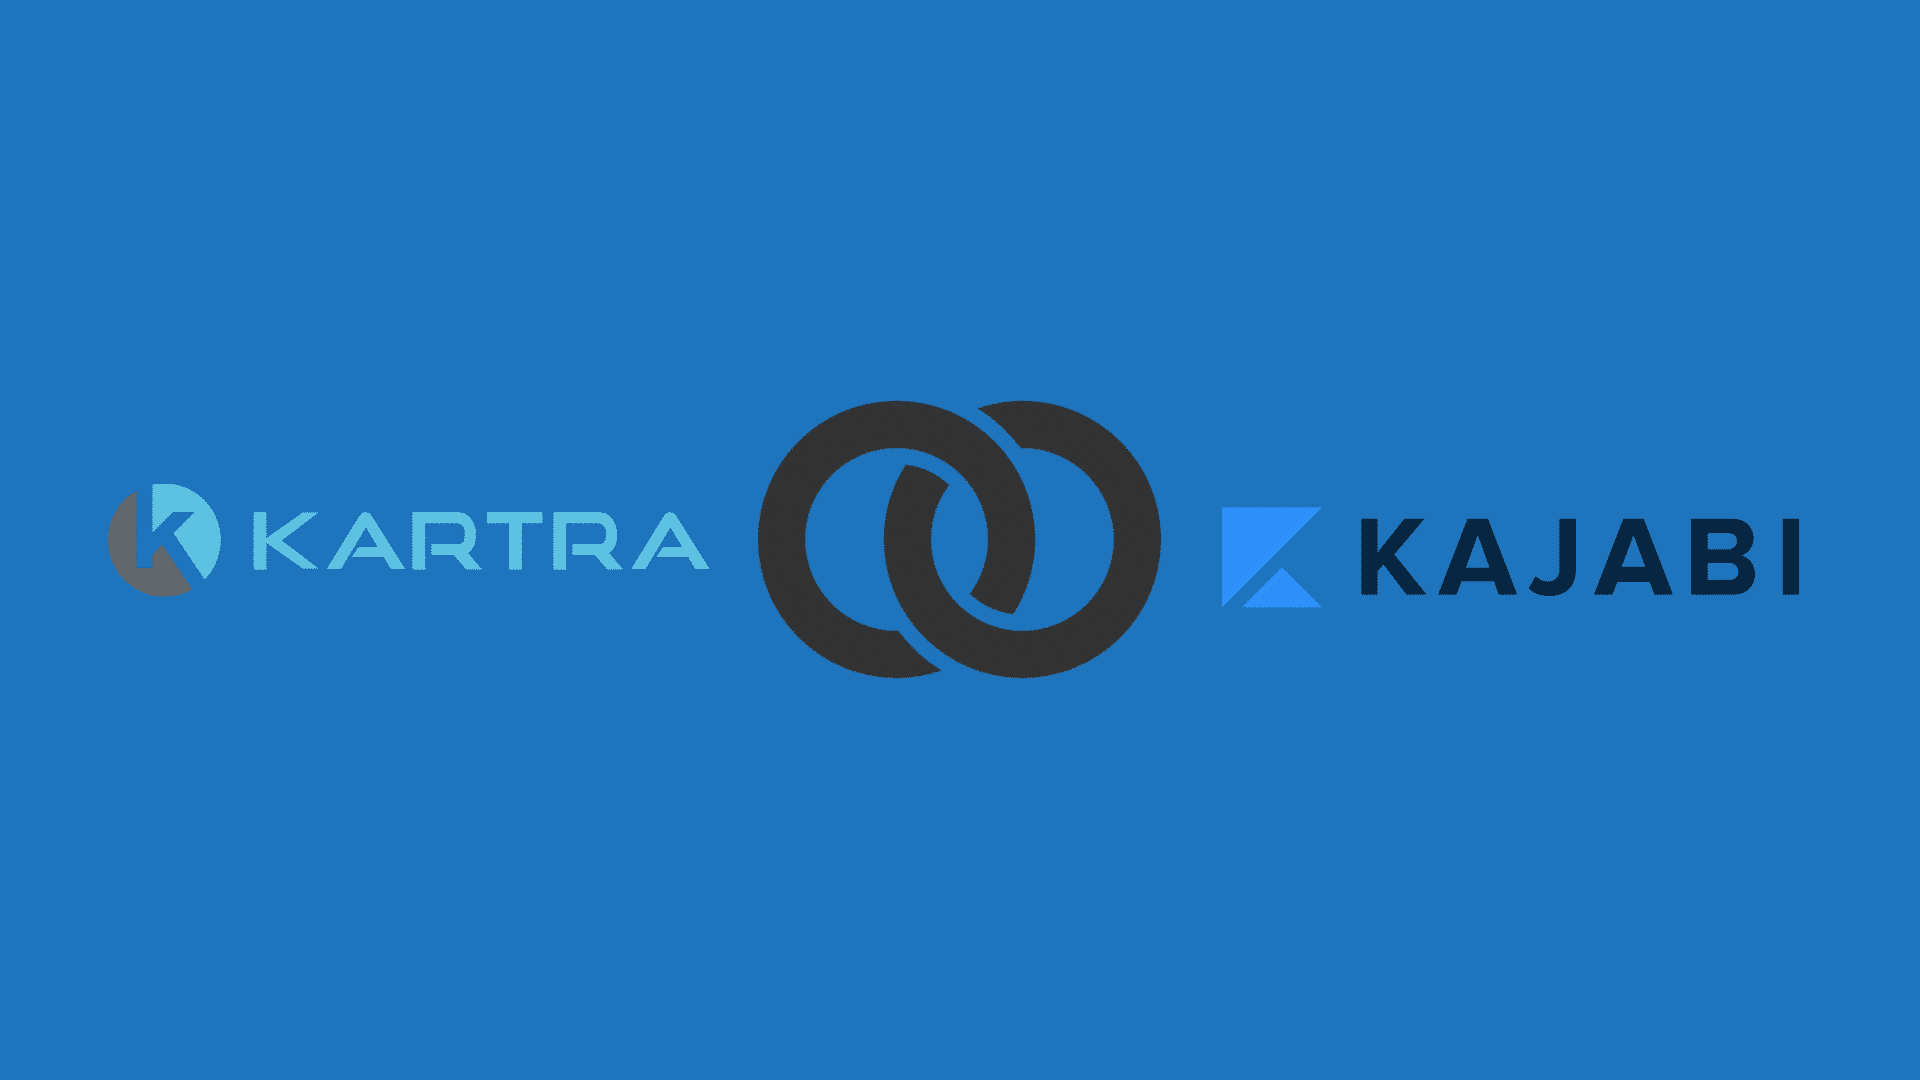 Kartra vs Kajabi – Similarities